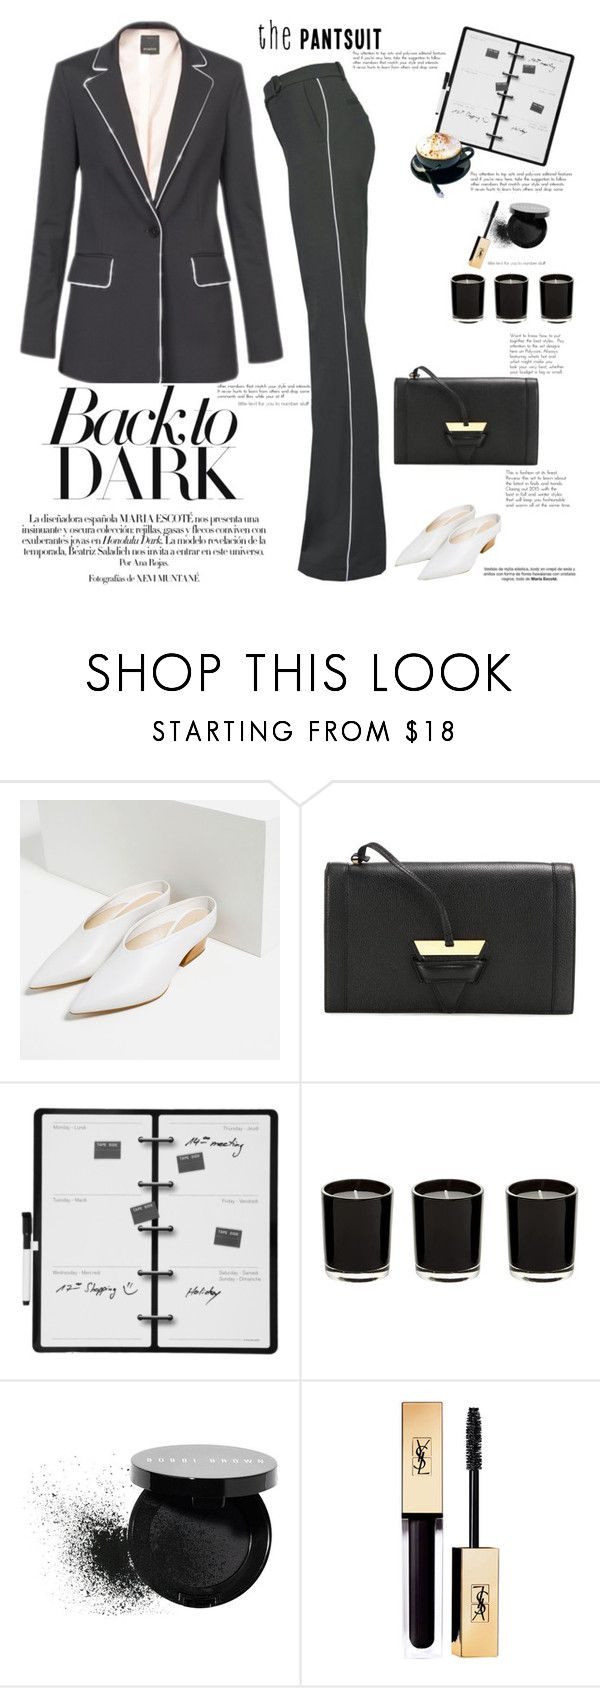 """""""Back to dark"""" by naki14 ❤ liked on Polyvore featuring Pinko, Zara, Loewe, Kikkerland, Bobbi Brown Cosmetics, trend, suitup, thepantsuit and pinkoofficial"""